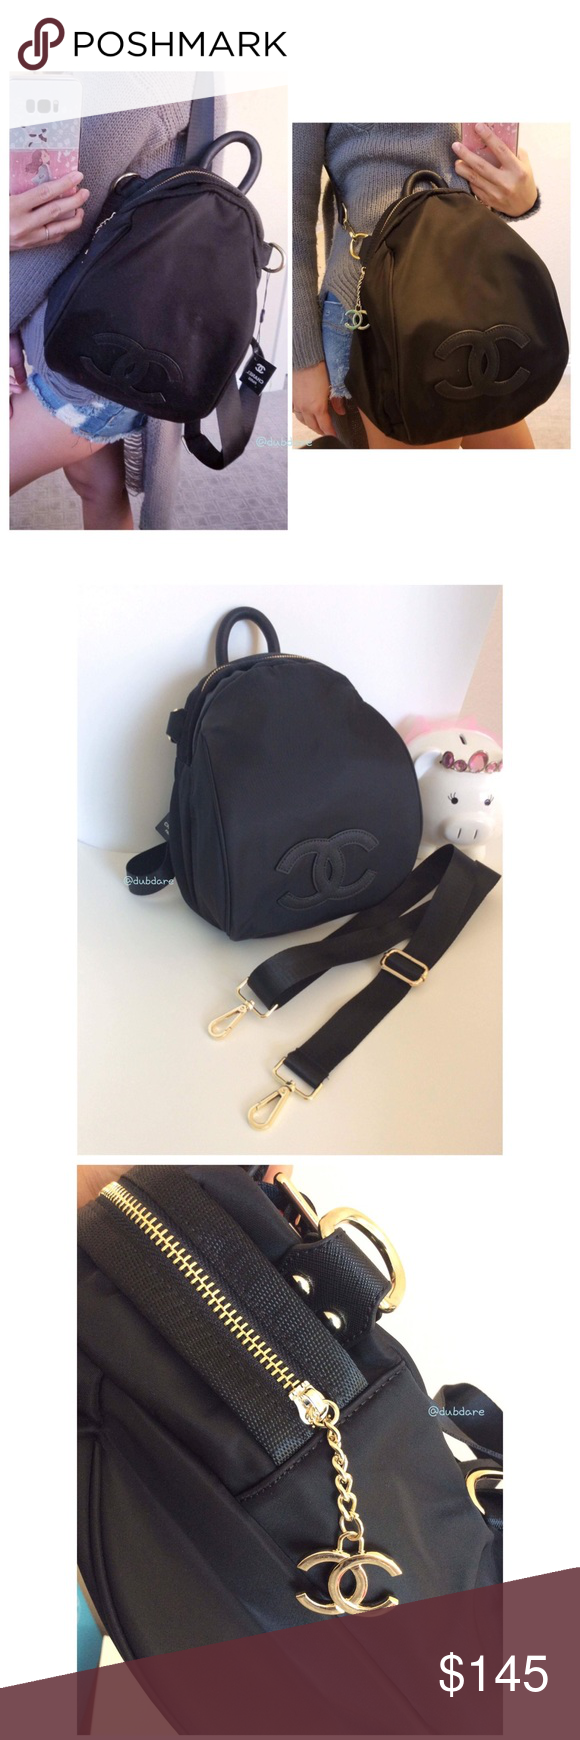 183d8733b0db Authentic Chanel VIP Gift Backpack Crossbody Bag Authentic 2017 Chanel VIP  GIFT from Asia. This cute backpack comes with extra strap so you can use as  a ...